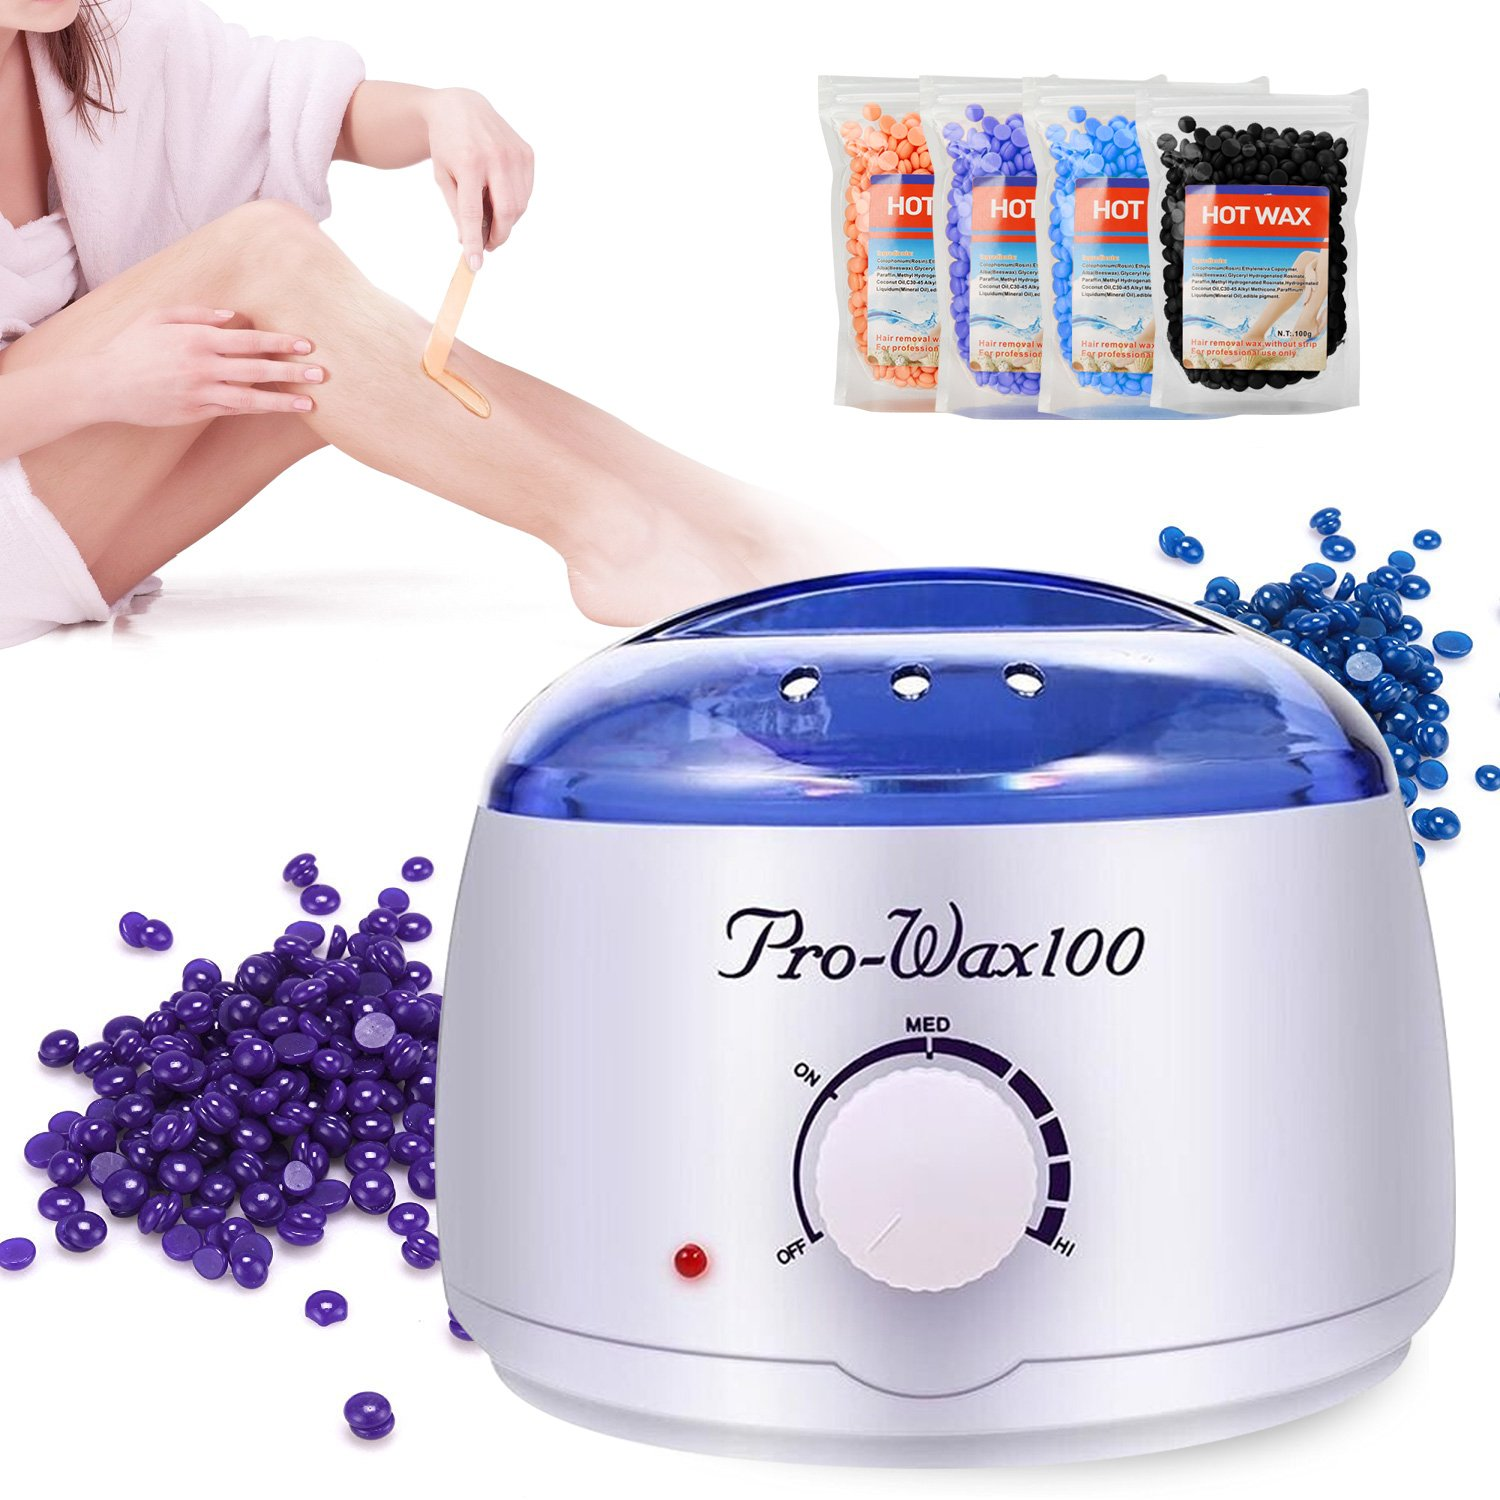 Silky-skin Wax Warmer, Yevita Wax Melts Hair Removal Waxing Kit Home Waxing Spa Tool for Body with any Wax Beans